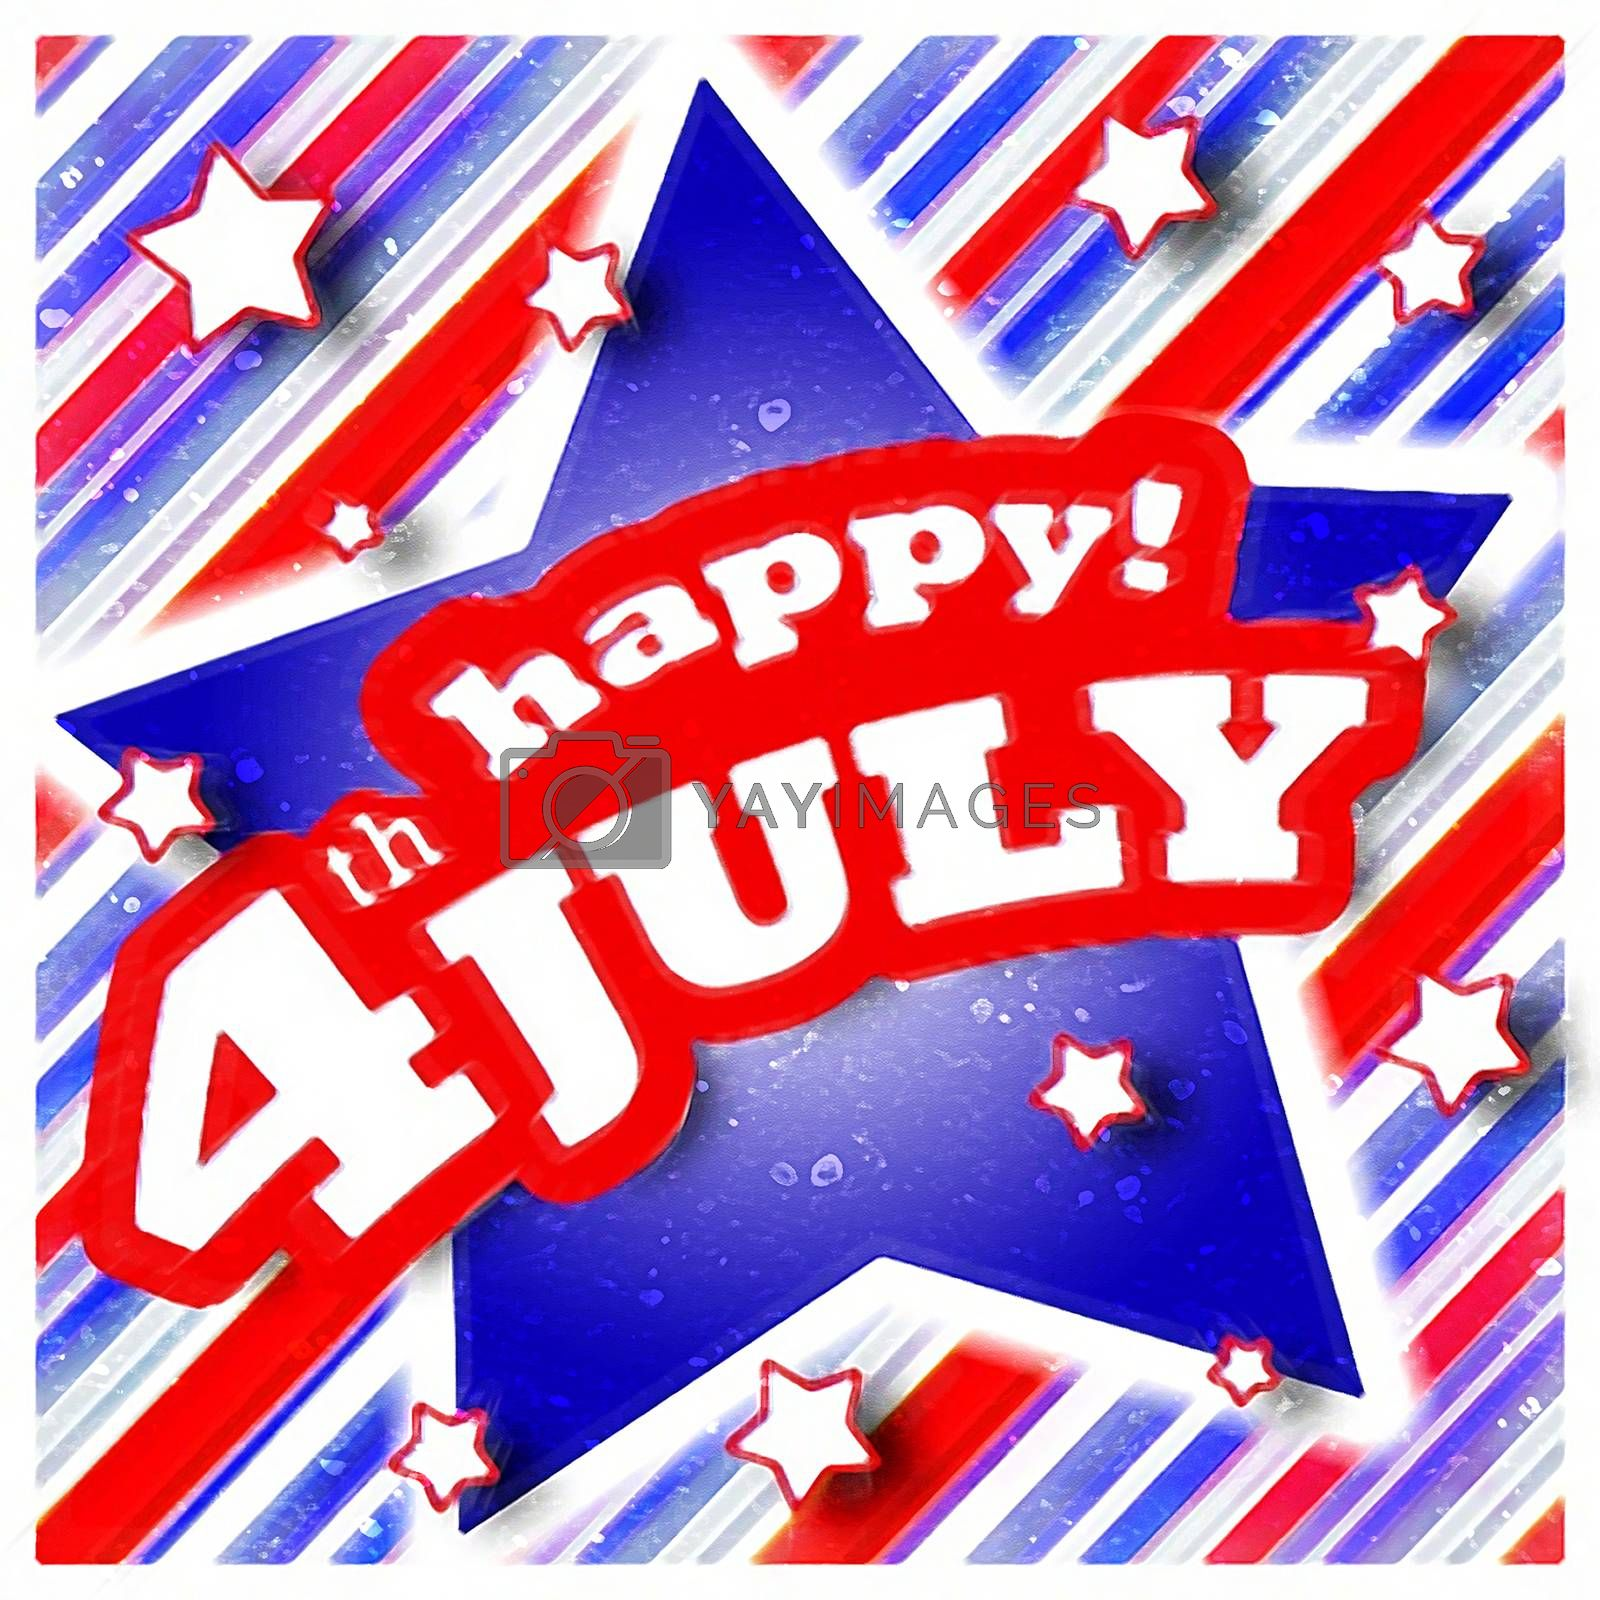 4th of July Celebration Design useful for any kind of event related with american events.